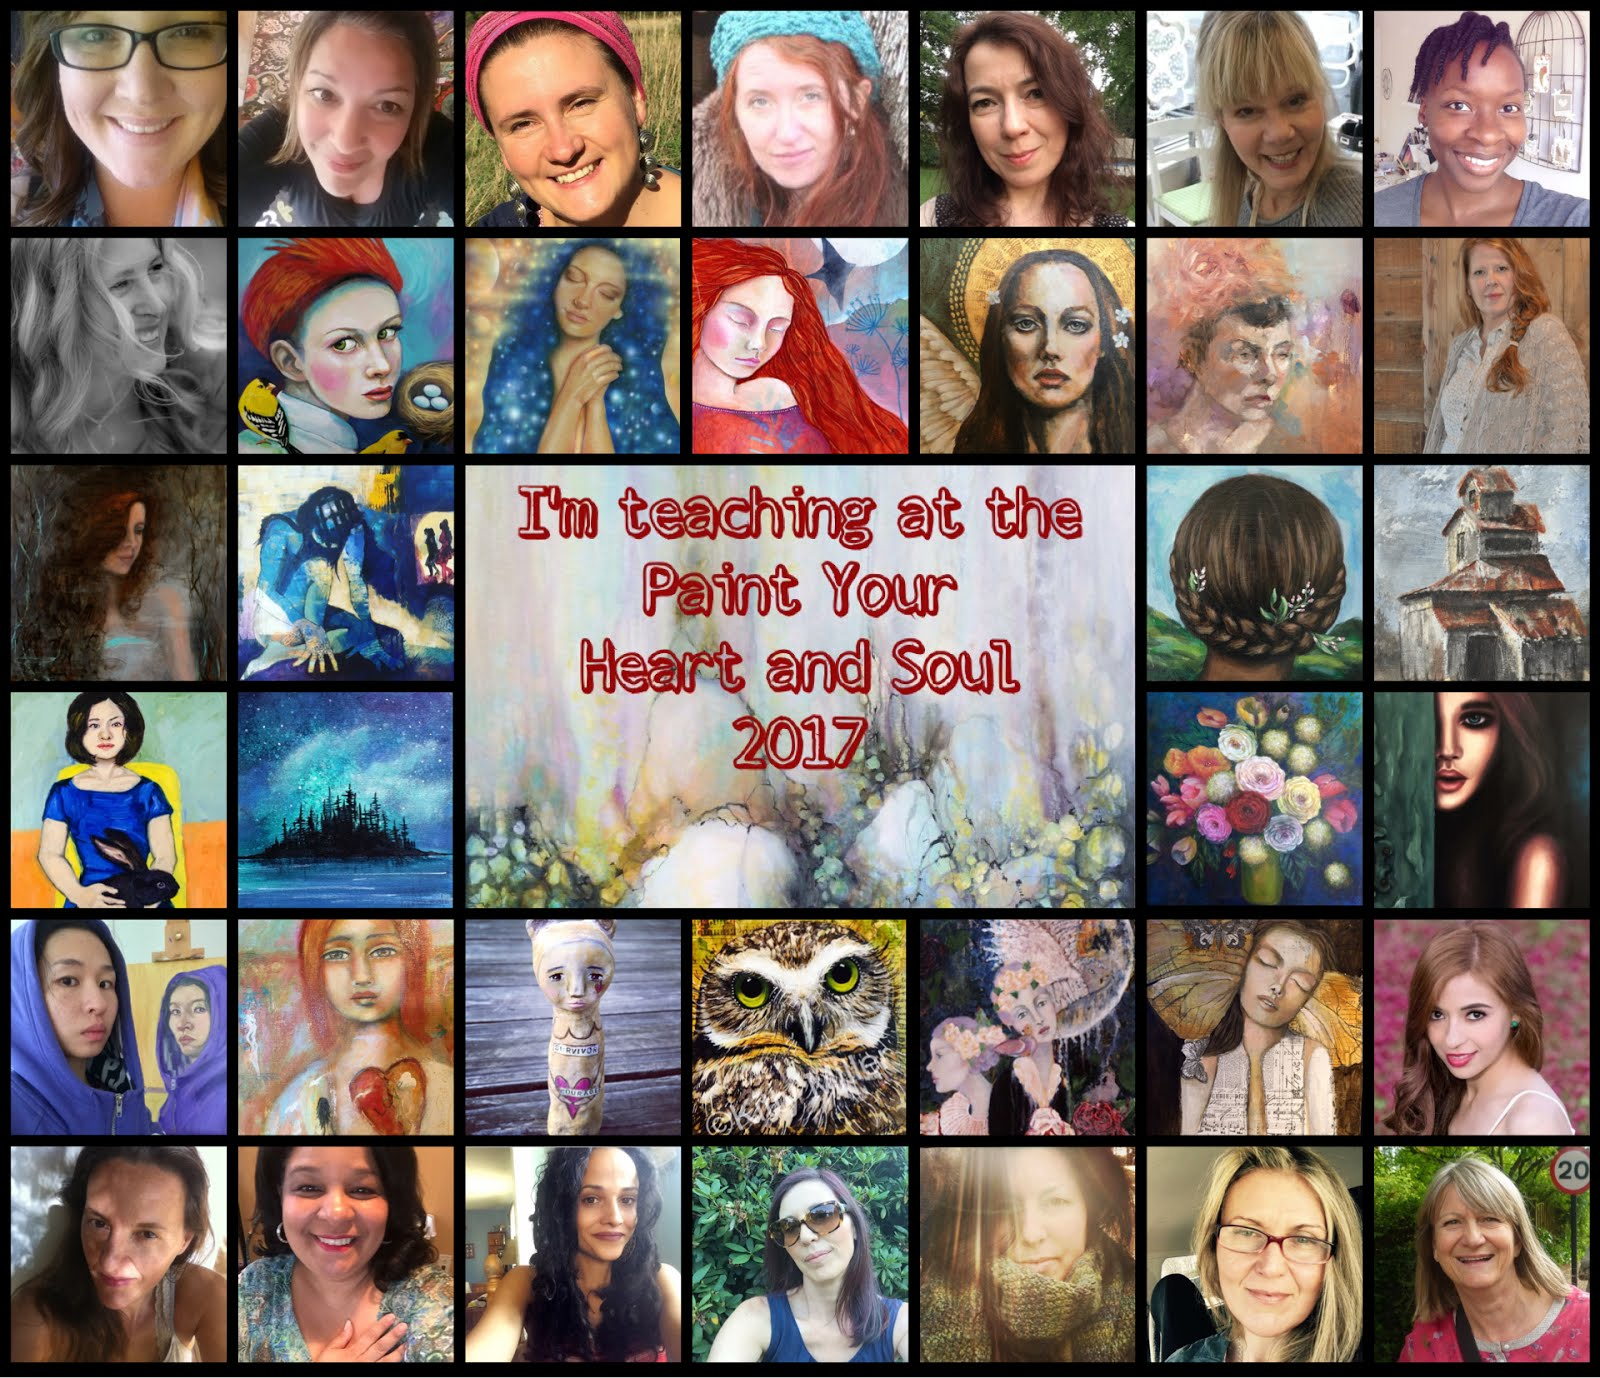 Paint Your Heart and Soul 2017 online class